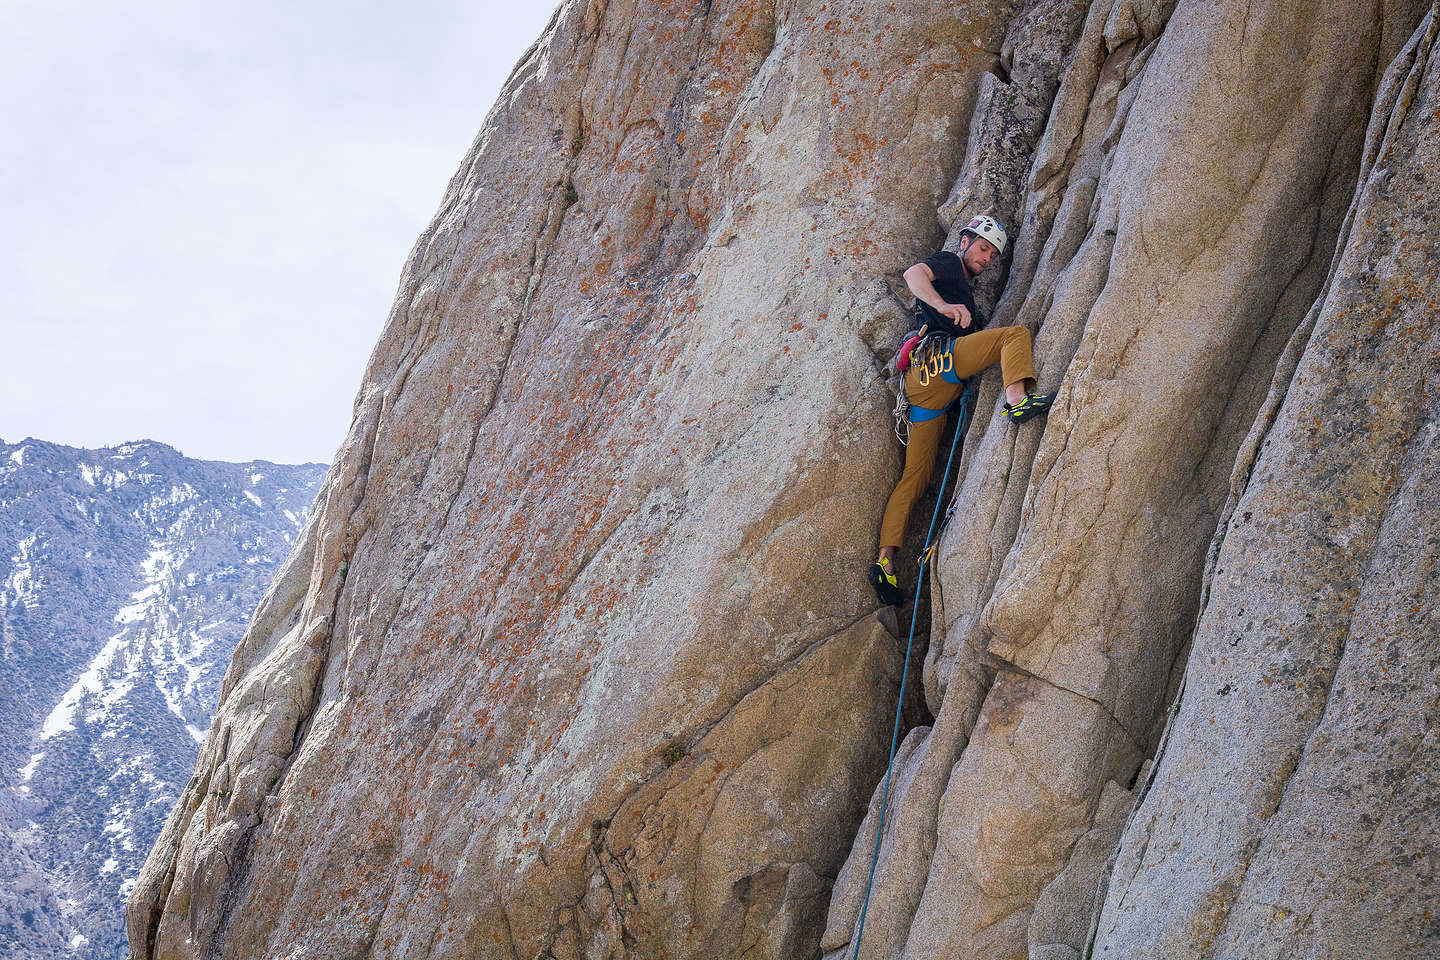 Tommy climbing in Pine Creek Canyon